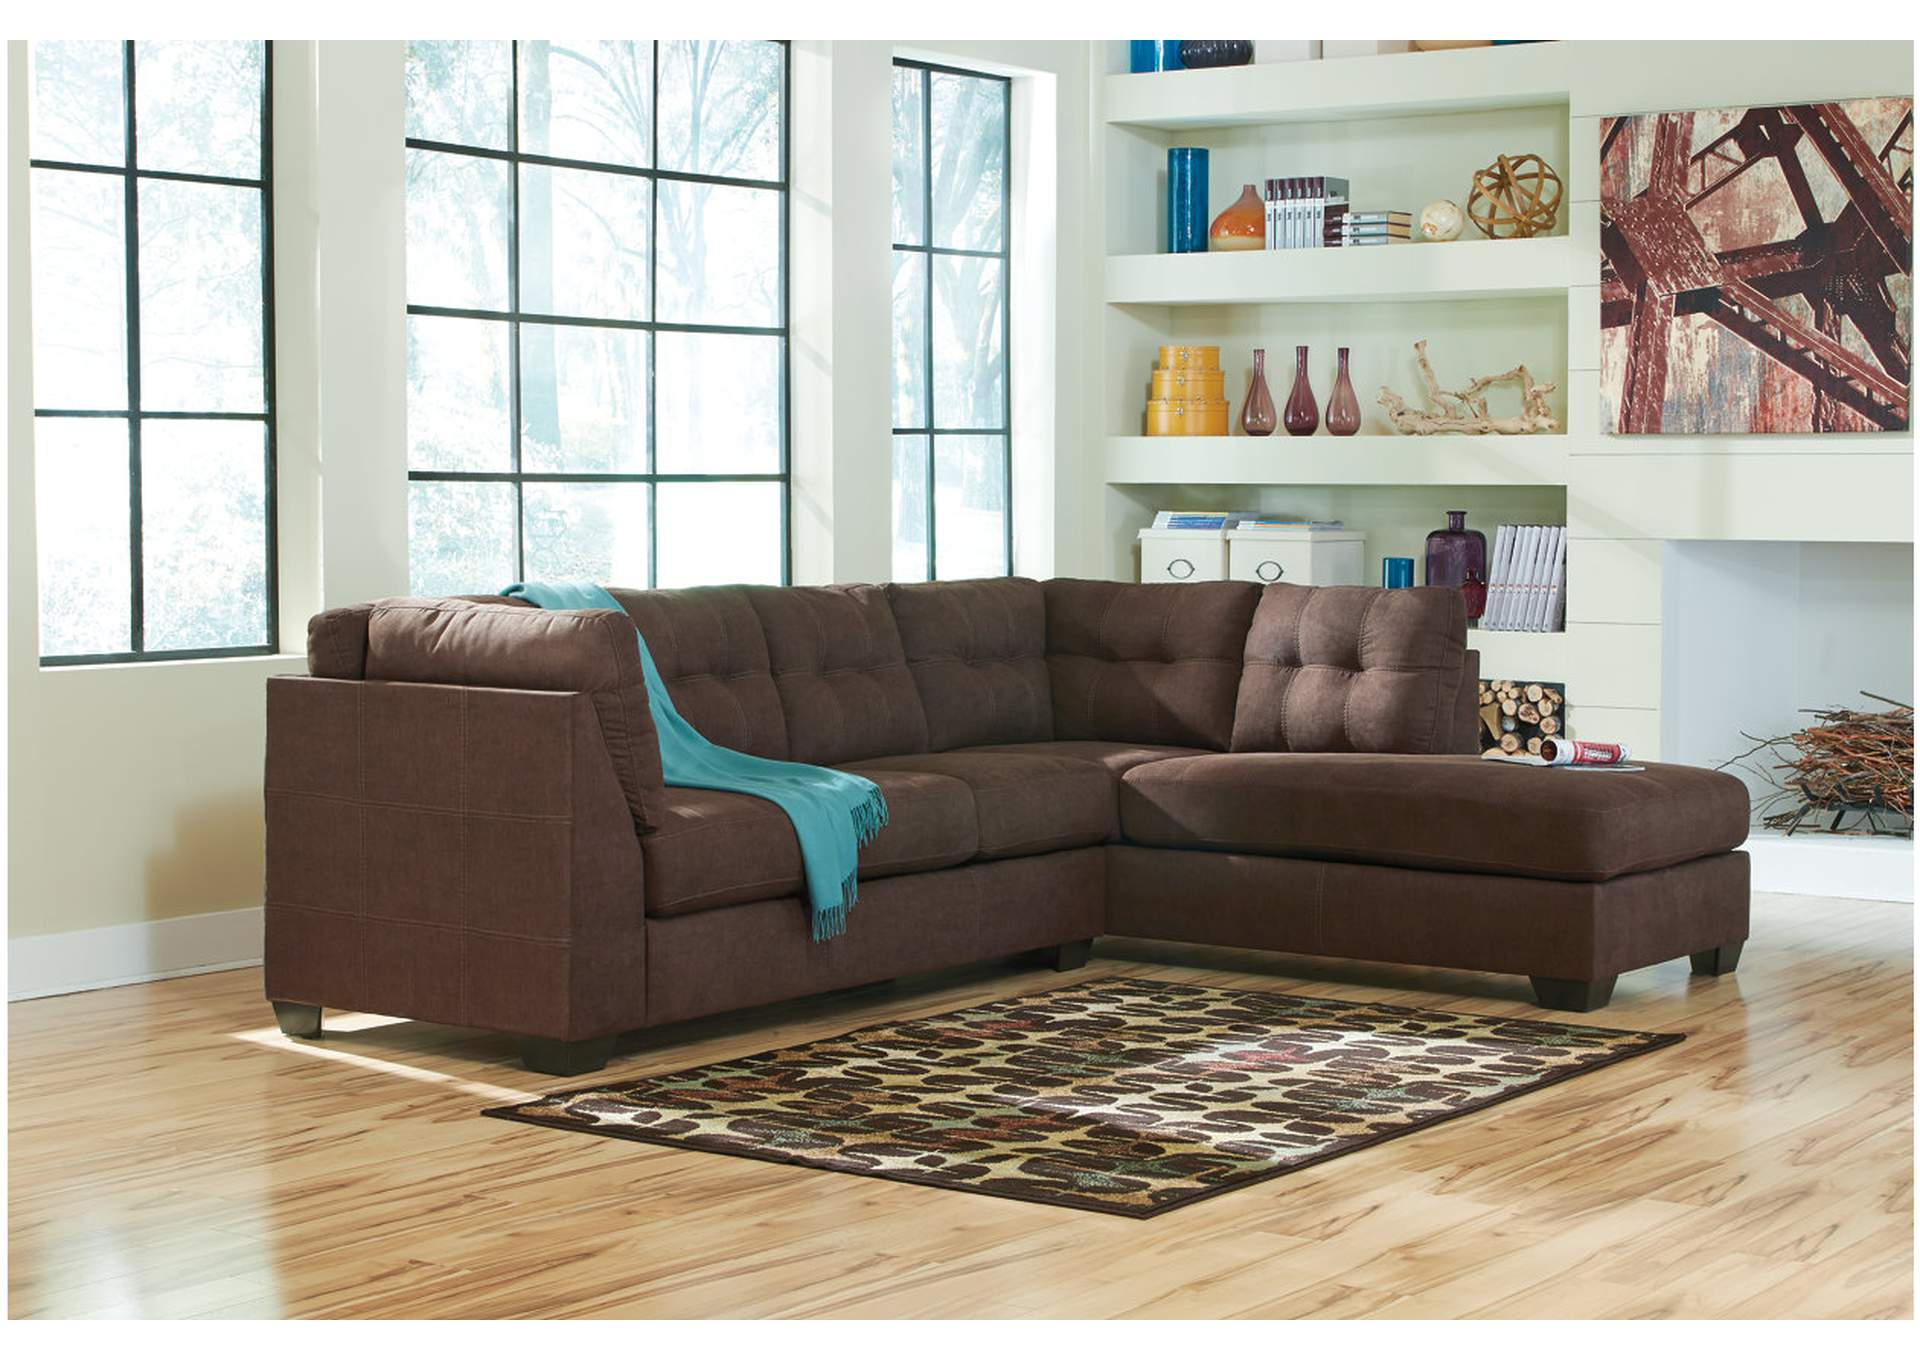 Maier Walnut Right Arm Facing Chaise End Sectional,ABF Benchcraft